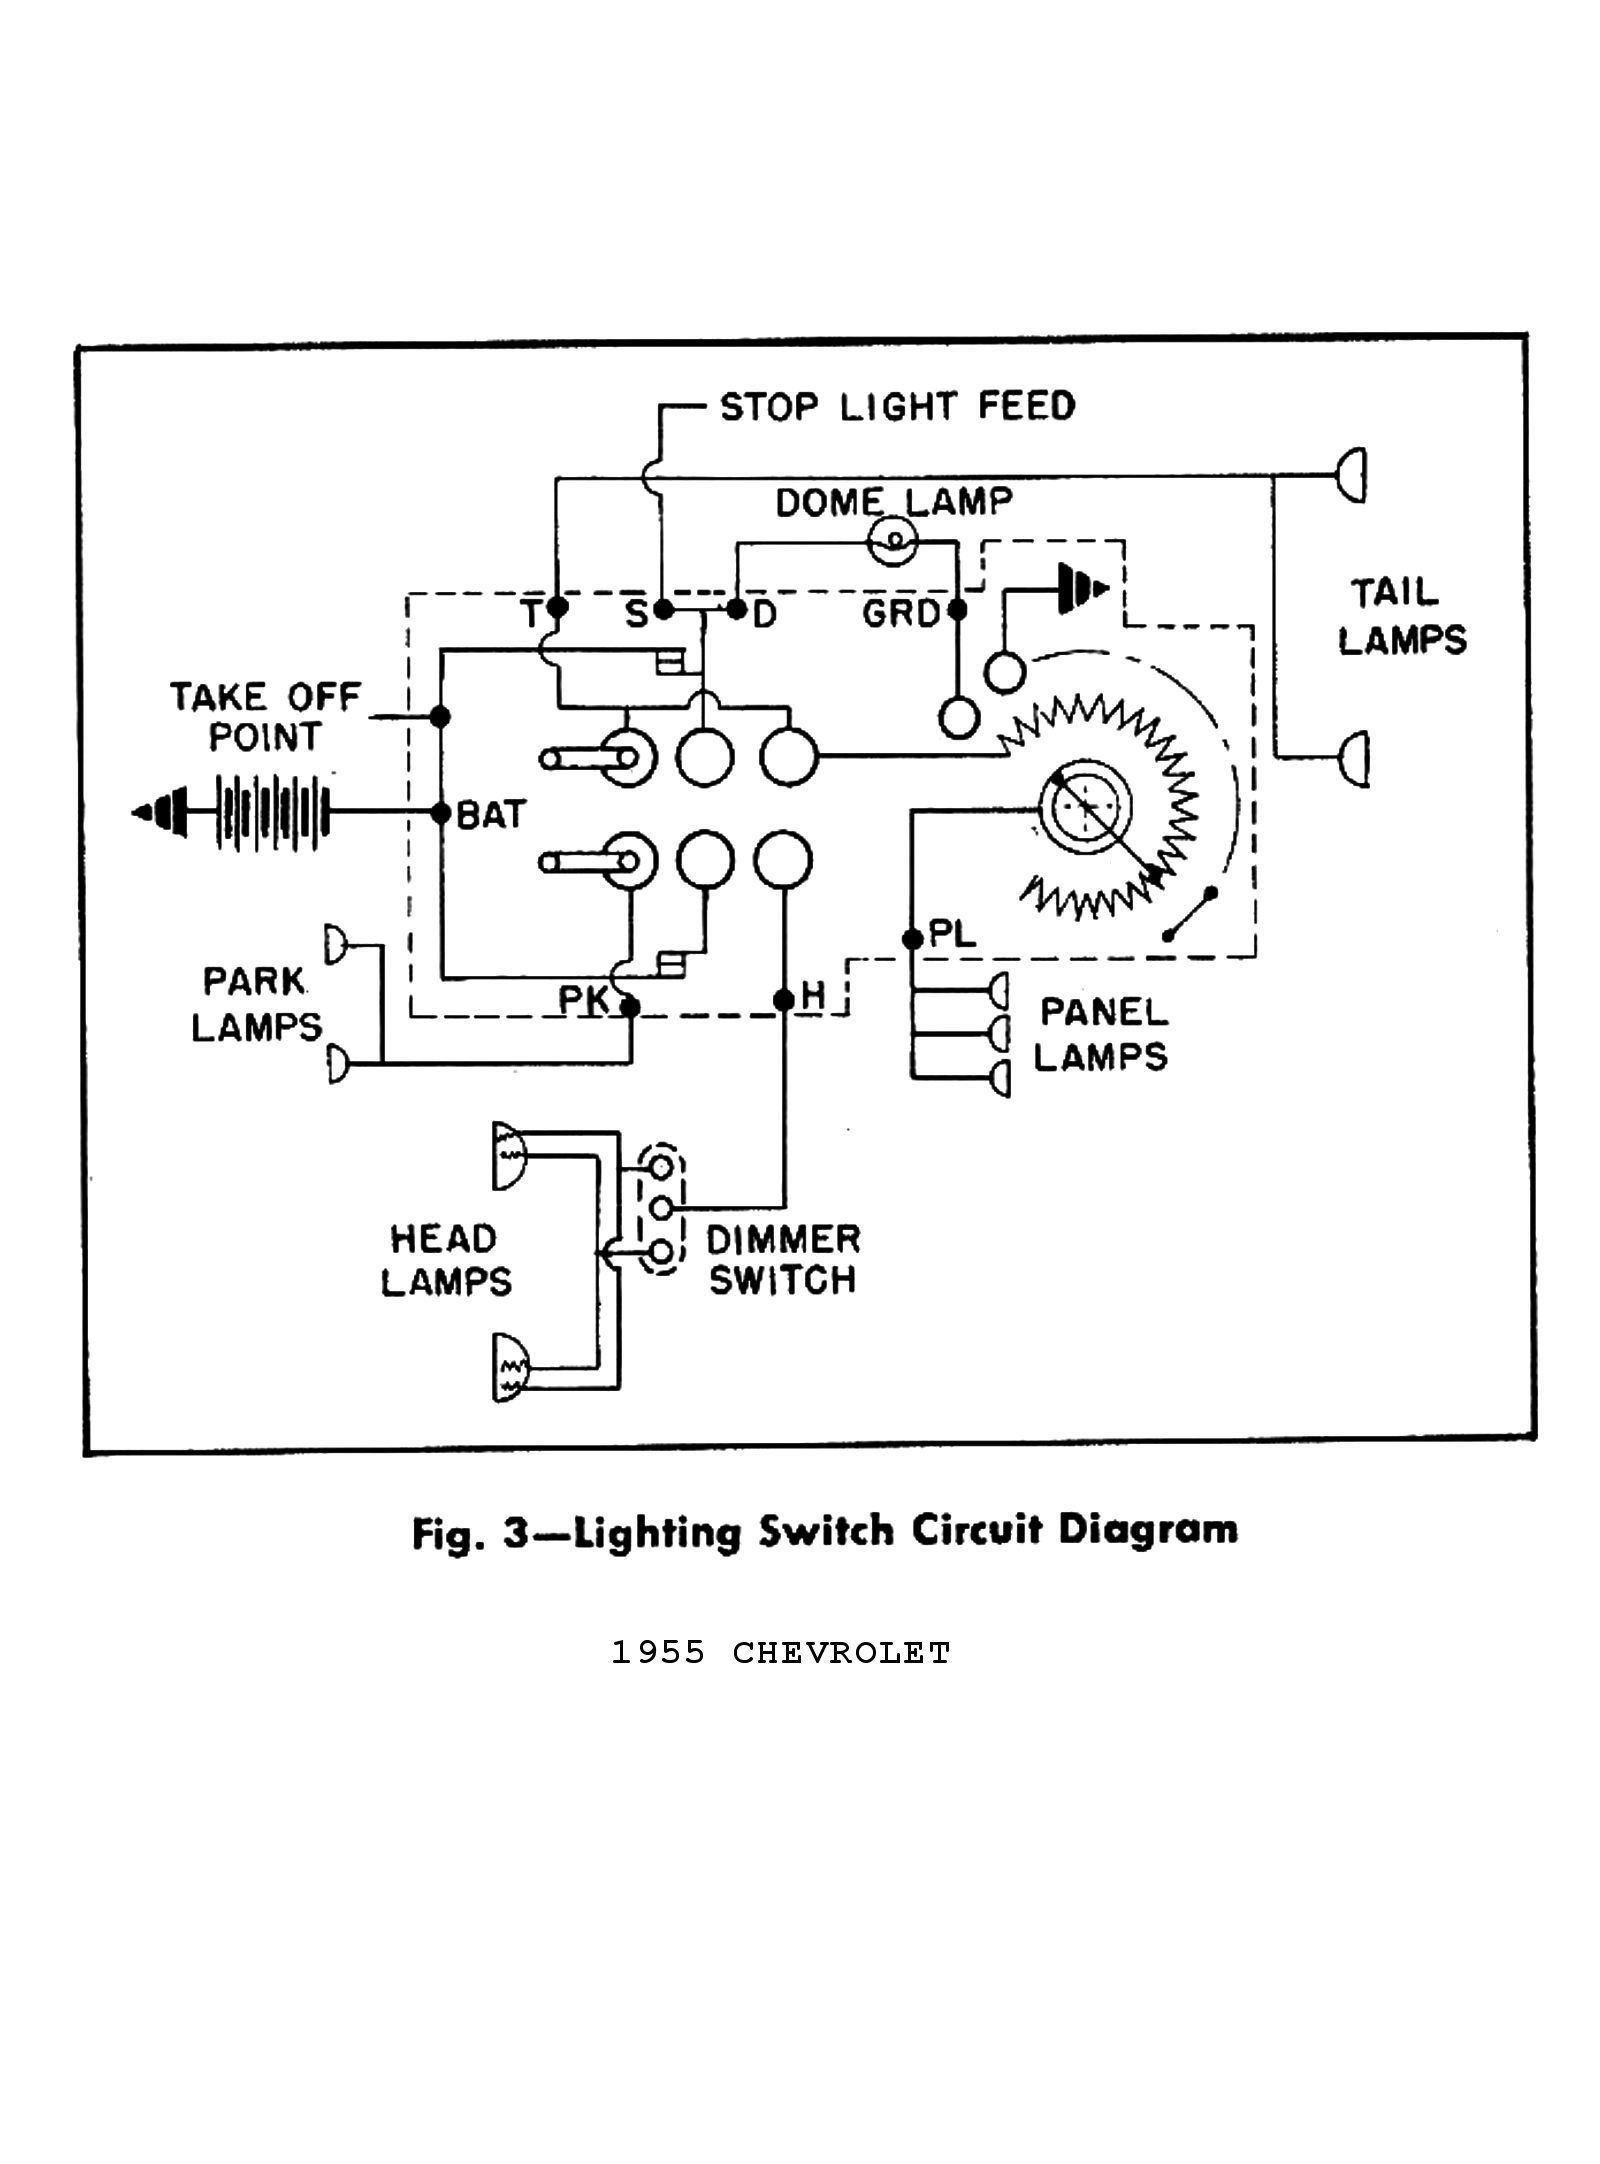 ignition wiring chevy wiring diagram toolboxuniversal ignition switch wiring diagram inspirational 1955 chevy of ignition wiring [ 1600 x 2164 Pixel ]